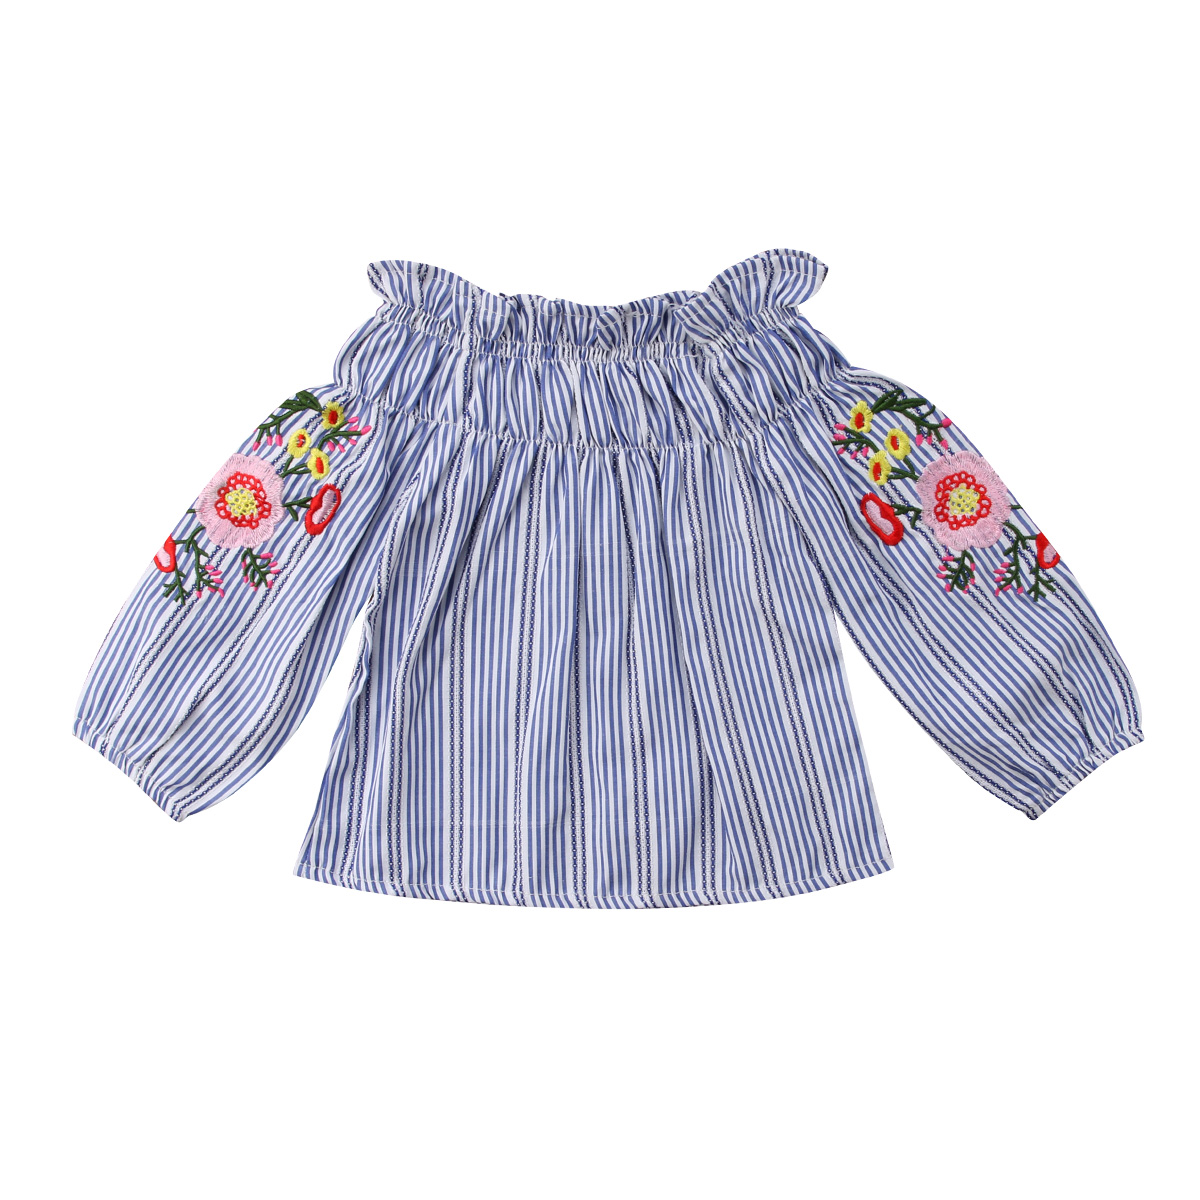 Toddler Baby Kid Girl Clothing Stripe Floral Embroider Off-Shoulder T-shirt Casual Summer Long Sleeve Tops Clothes Girls 1-7T